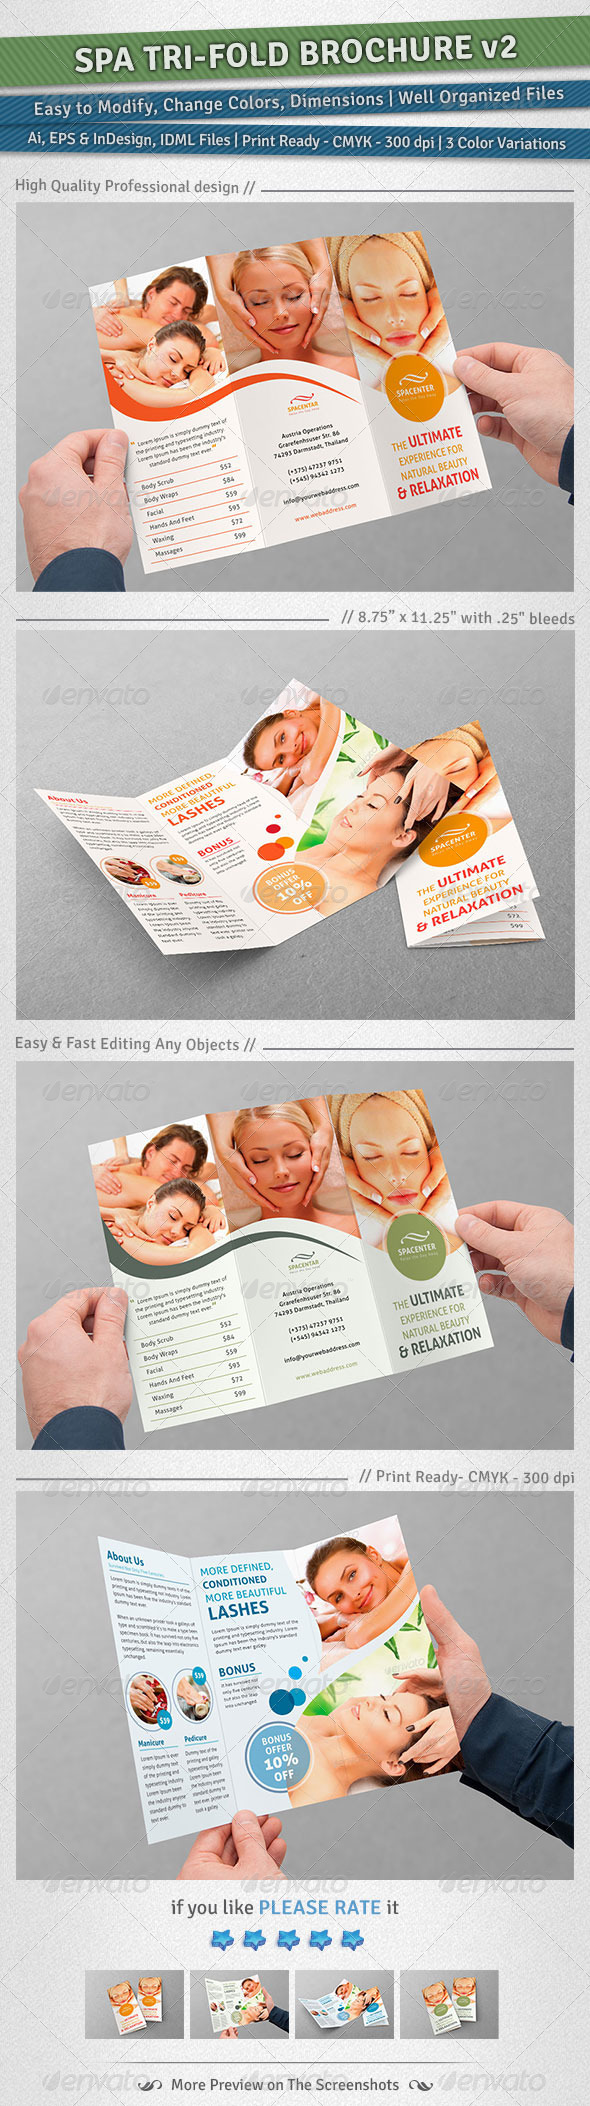 GraphicRiver Spa Tri-Fold Brochure Volume 2 4955371